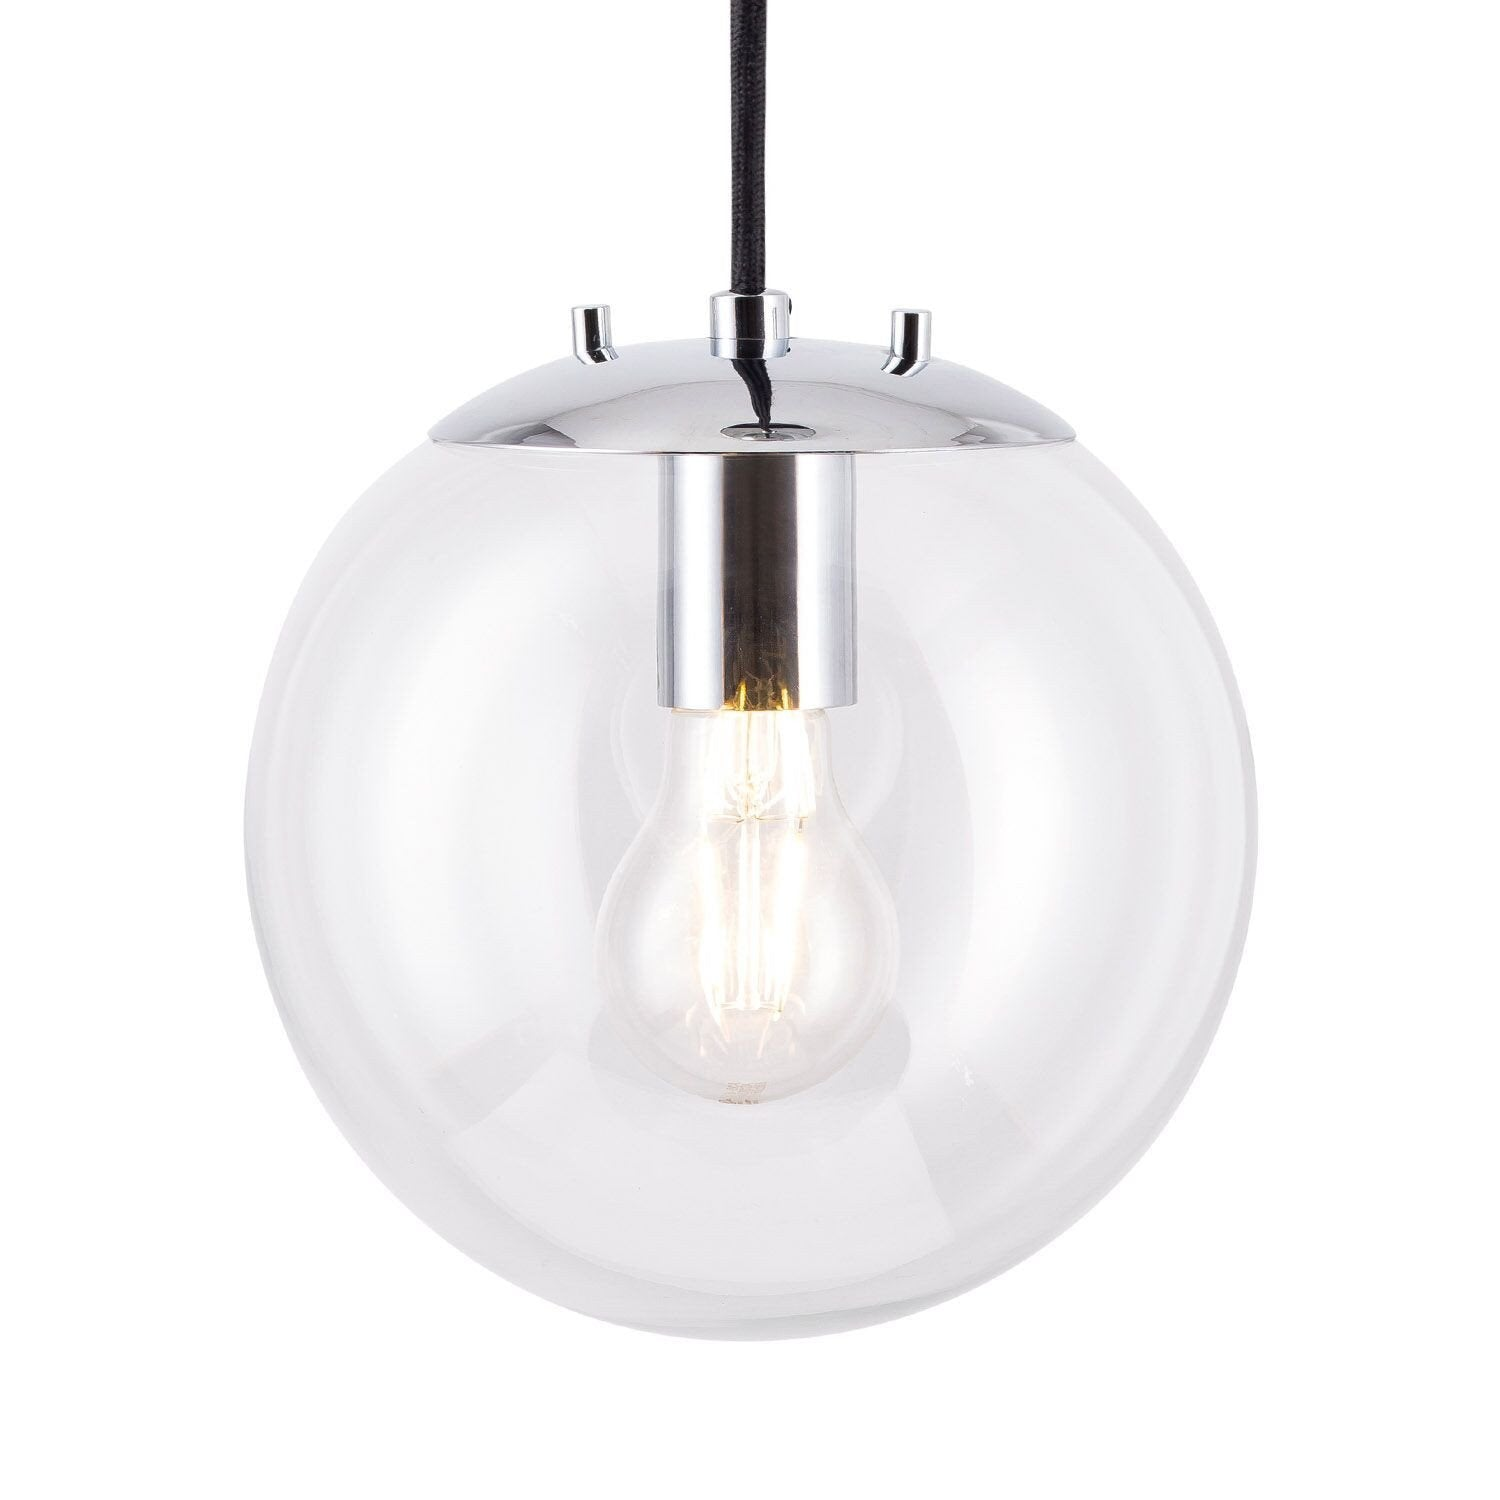 Sferra Led Industrial Kitchen Pendant Light Replacement Clear Glass Linea Lighting Modern And Affordable Residential Lighting